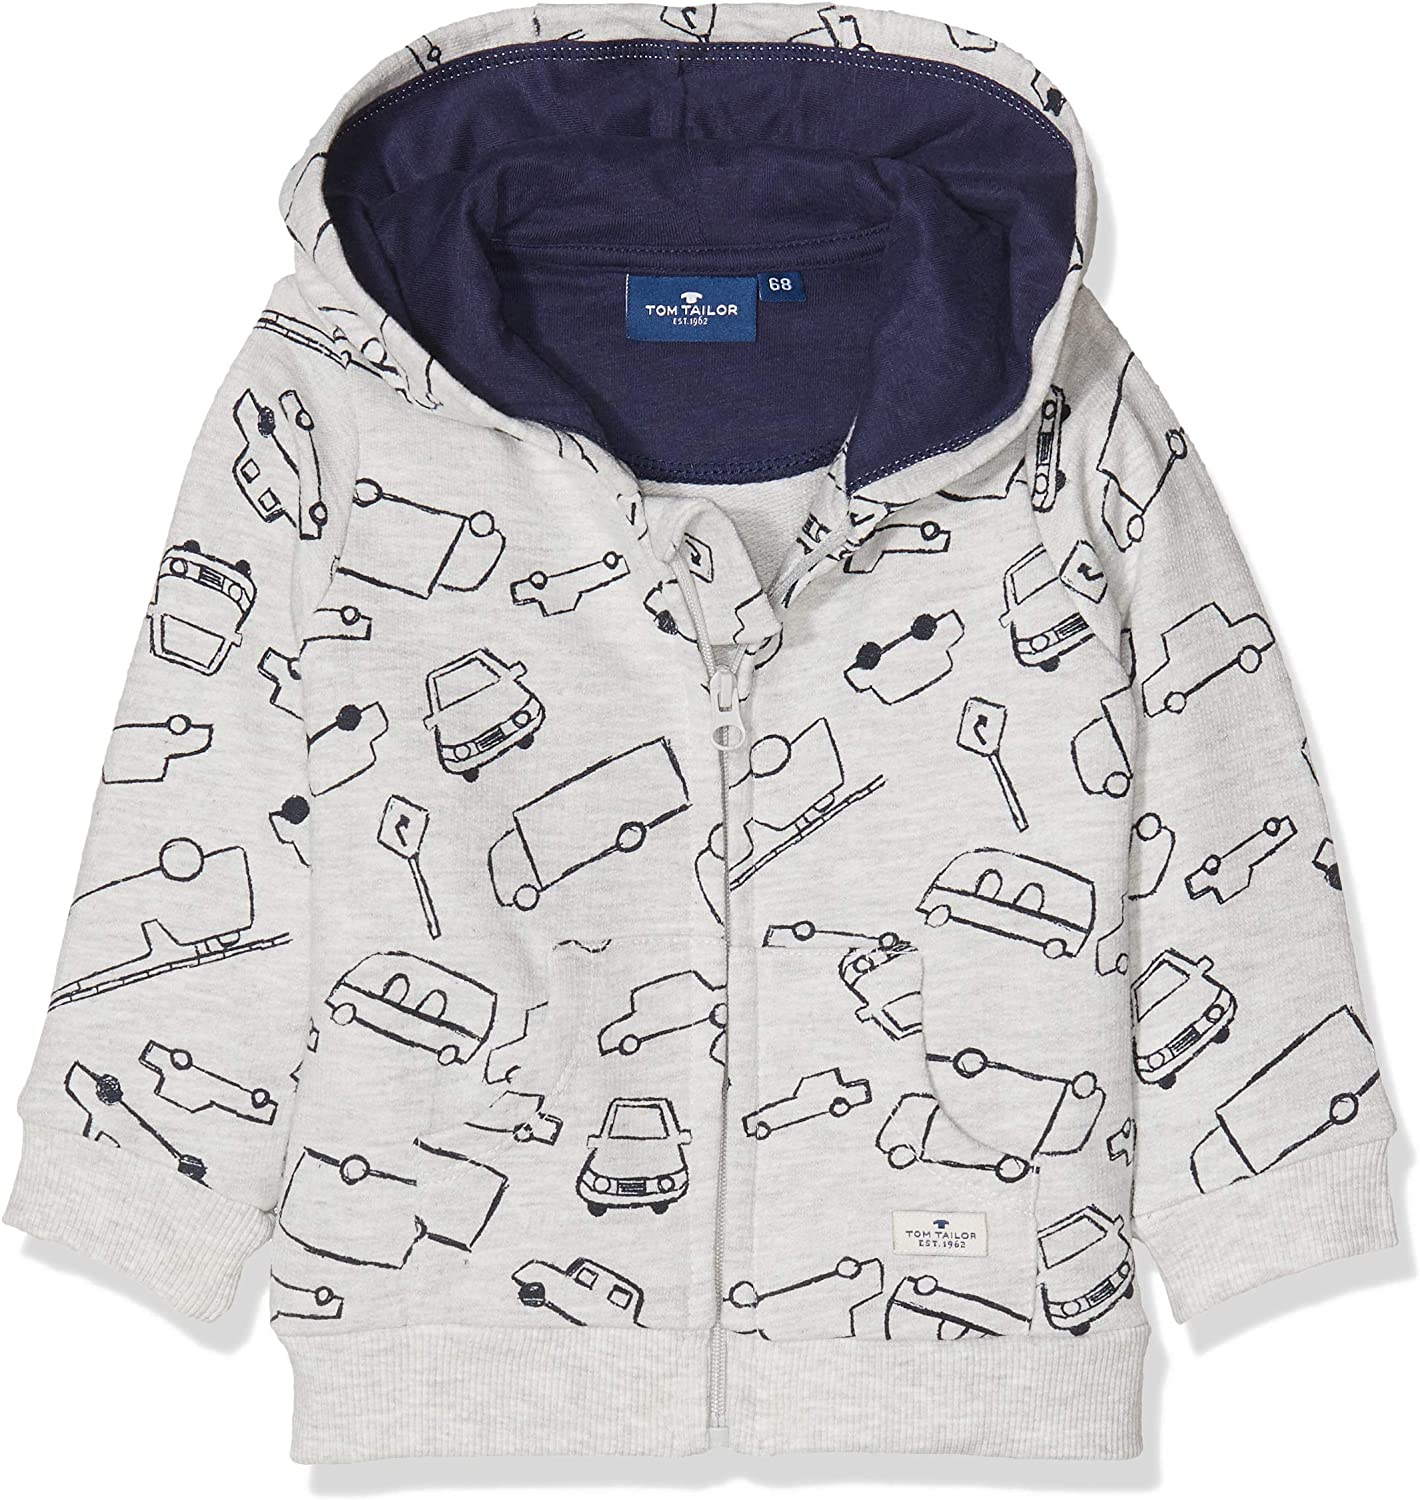 TOM TAILOR Baby-Jungen Sweatshirts